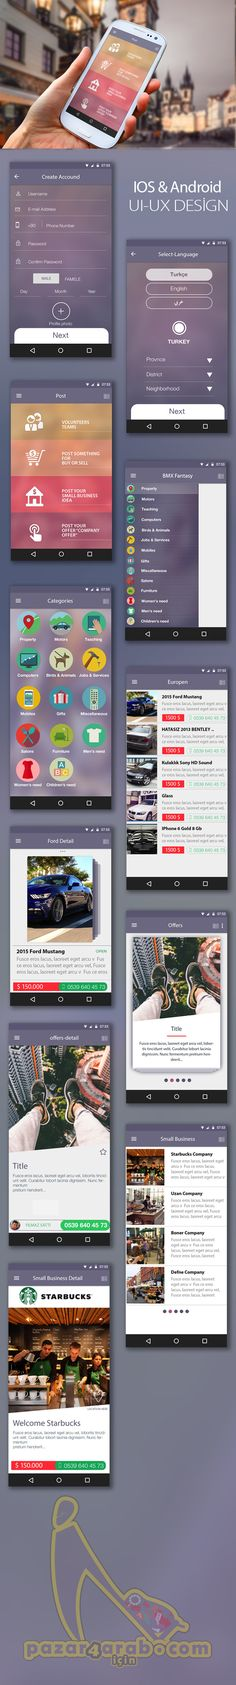 Best Agency for android app design Ui Ux Design, Mobile Application Design, Design Social, Gui Interface, Interface Design, App Design Inspiration, Mobile App Ui, Mobile App Design, Apps Android